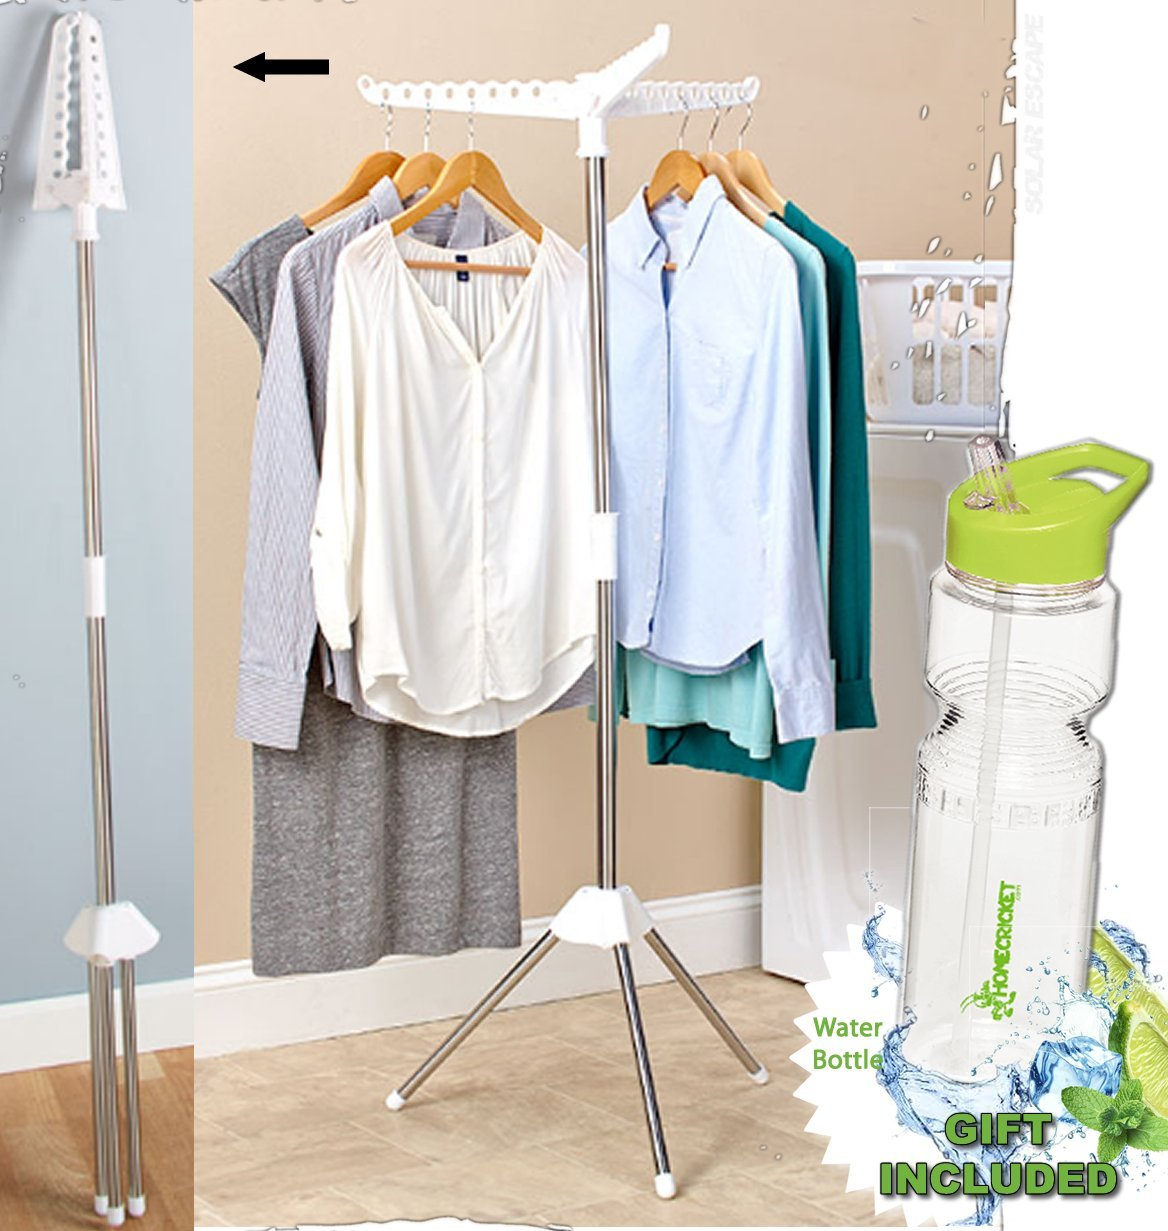 Gift Included- Air-dry Wet Garment Clothes Drying Pole Hang and Dry Rack for Home, Travel or College + FREE Bonus Water Bottle byHomecricket